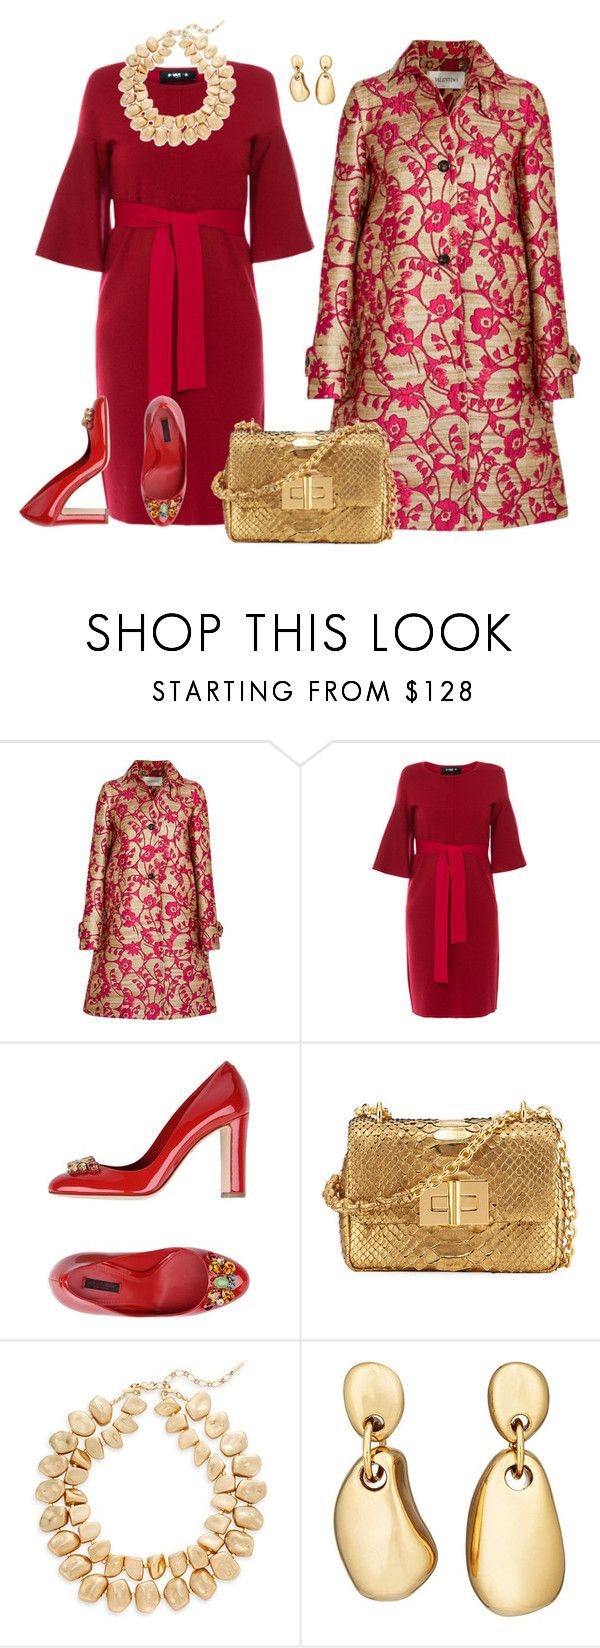 """P. G. #56"" by patricia-gonzalez-1 ❤ liked on Polyvore featuring Valentino, Paule Ka, Dolce&Gabbana, Tom Ford, Saks Fifth Avenue and Agmes"